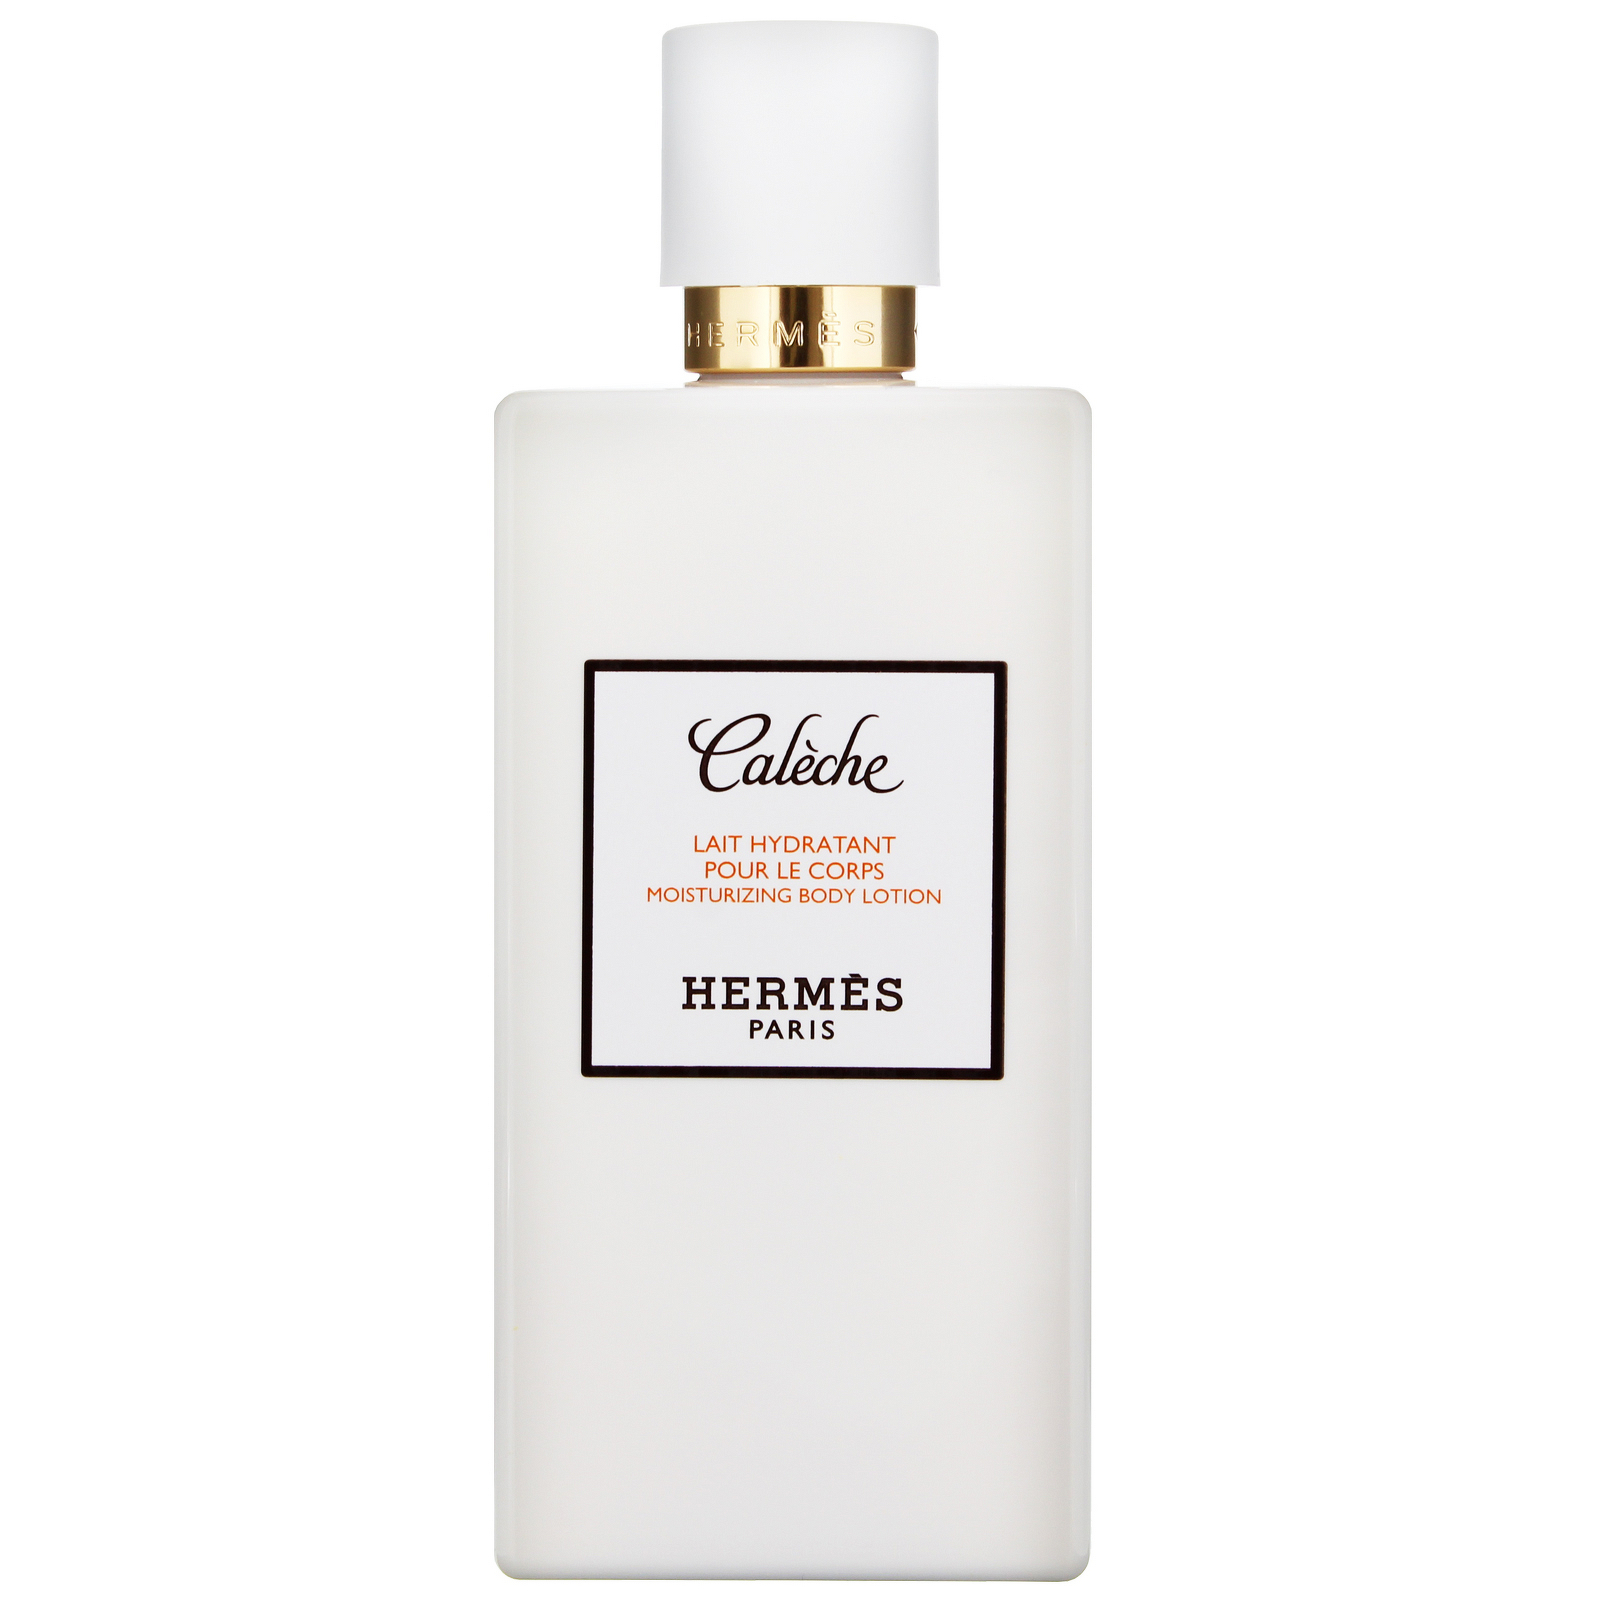 Hermes Caleche Body Lotion 200ml